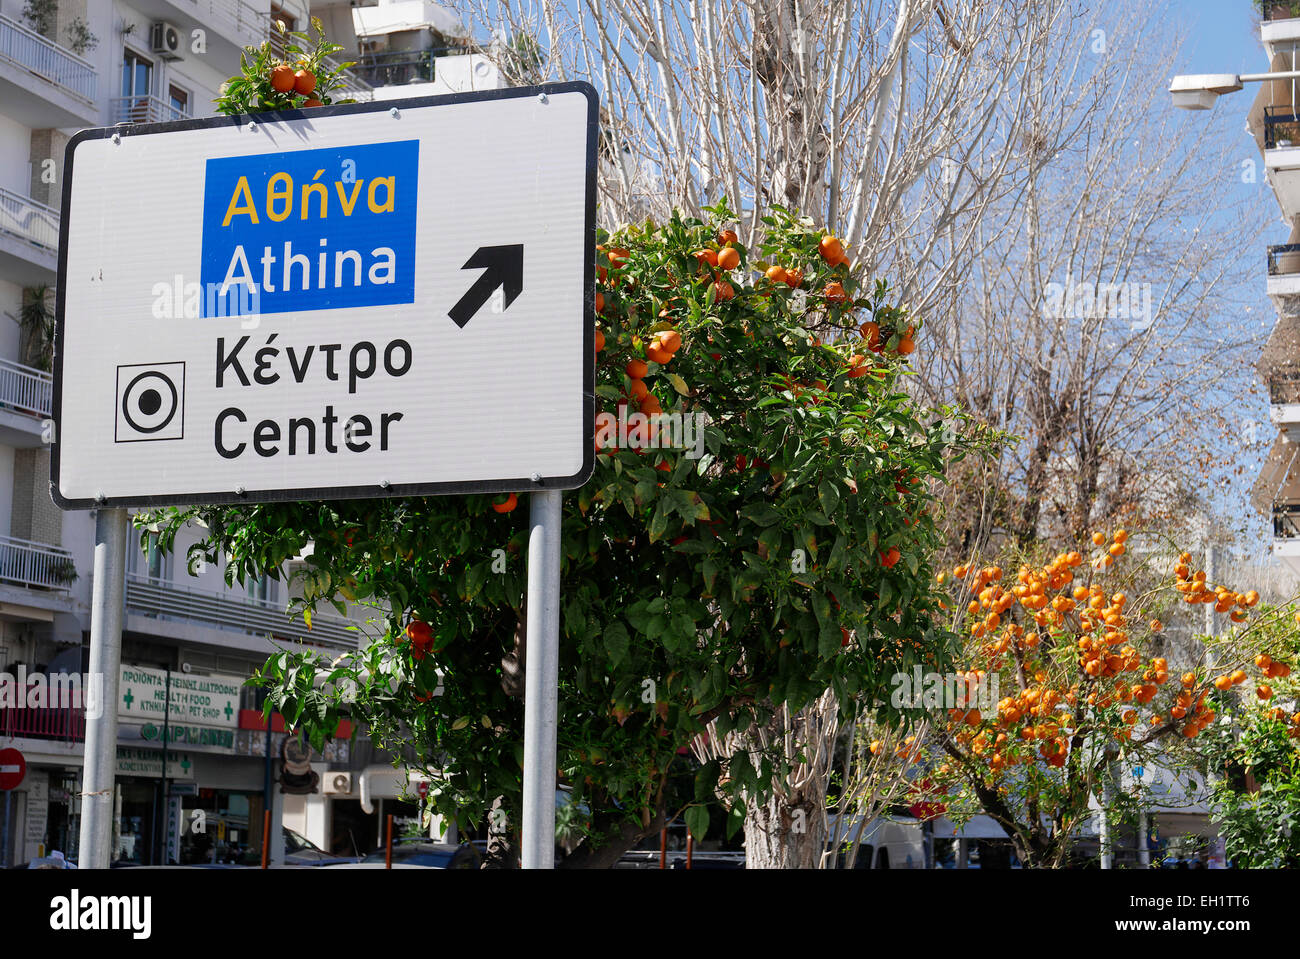 europe greece athens a street sign overgrown with oranges - Stock Image